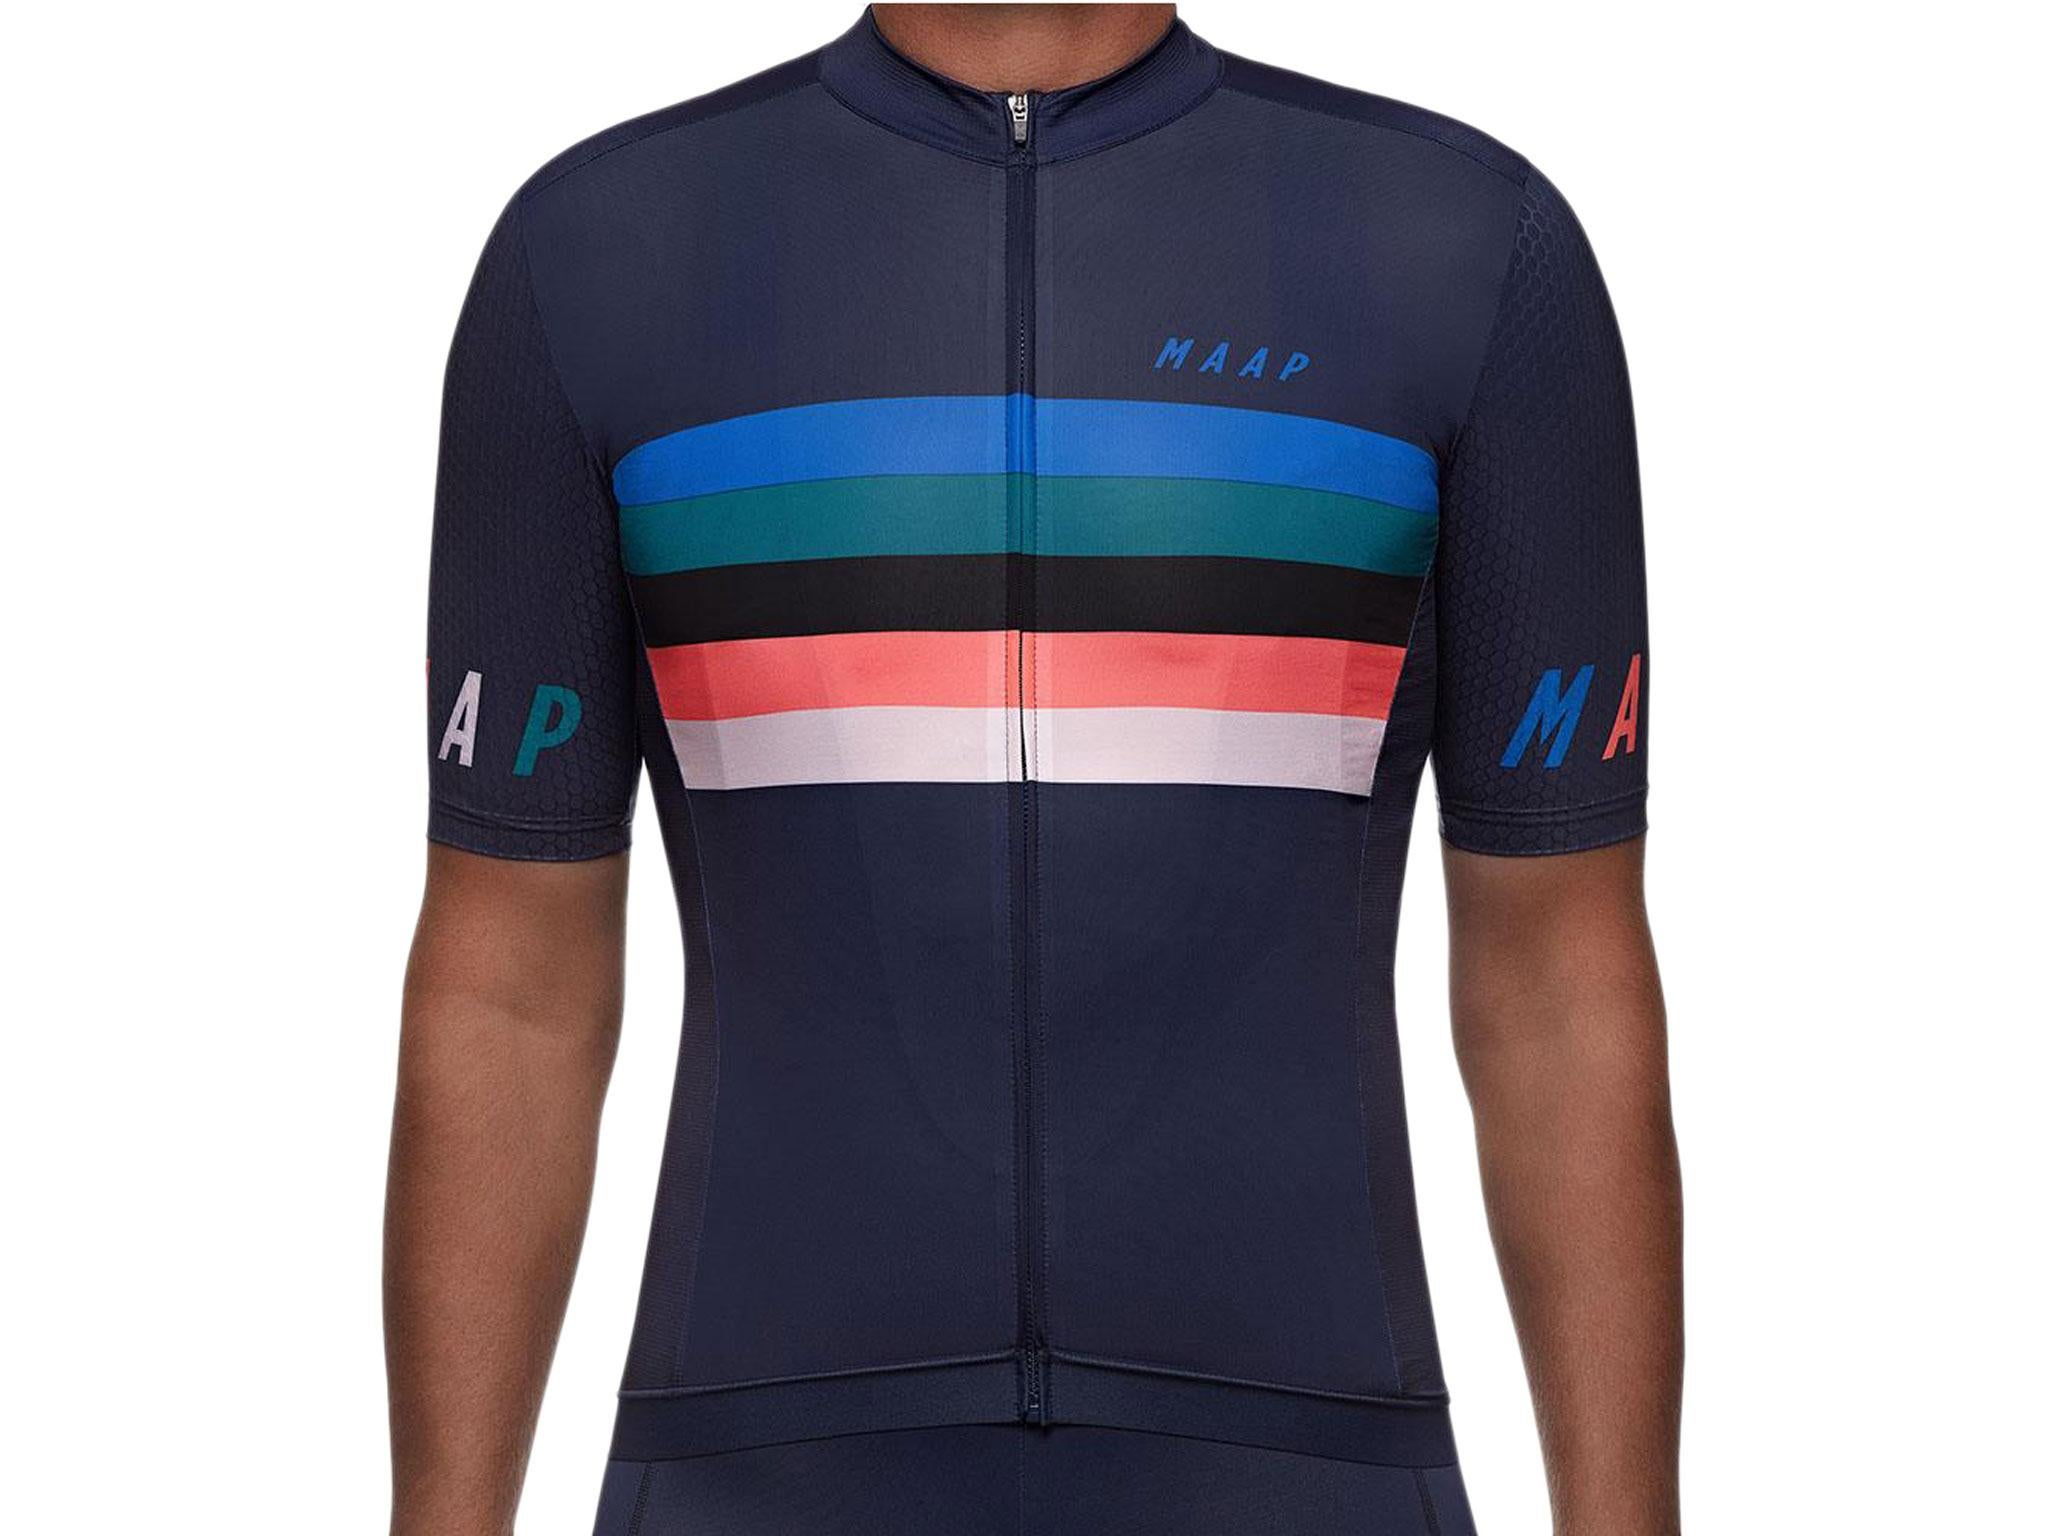 f8f3c5770 Maap Worlds Pro Hex Short Sleeve Jersey  £132